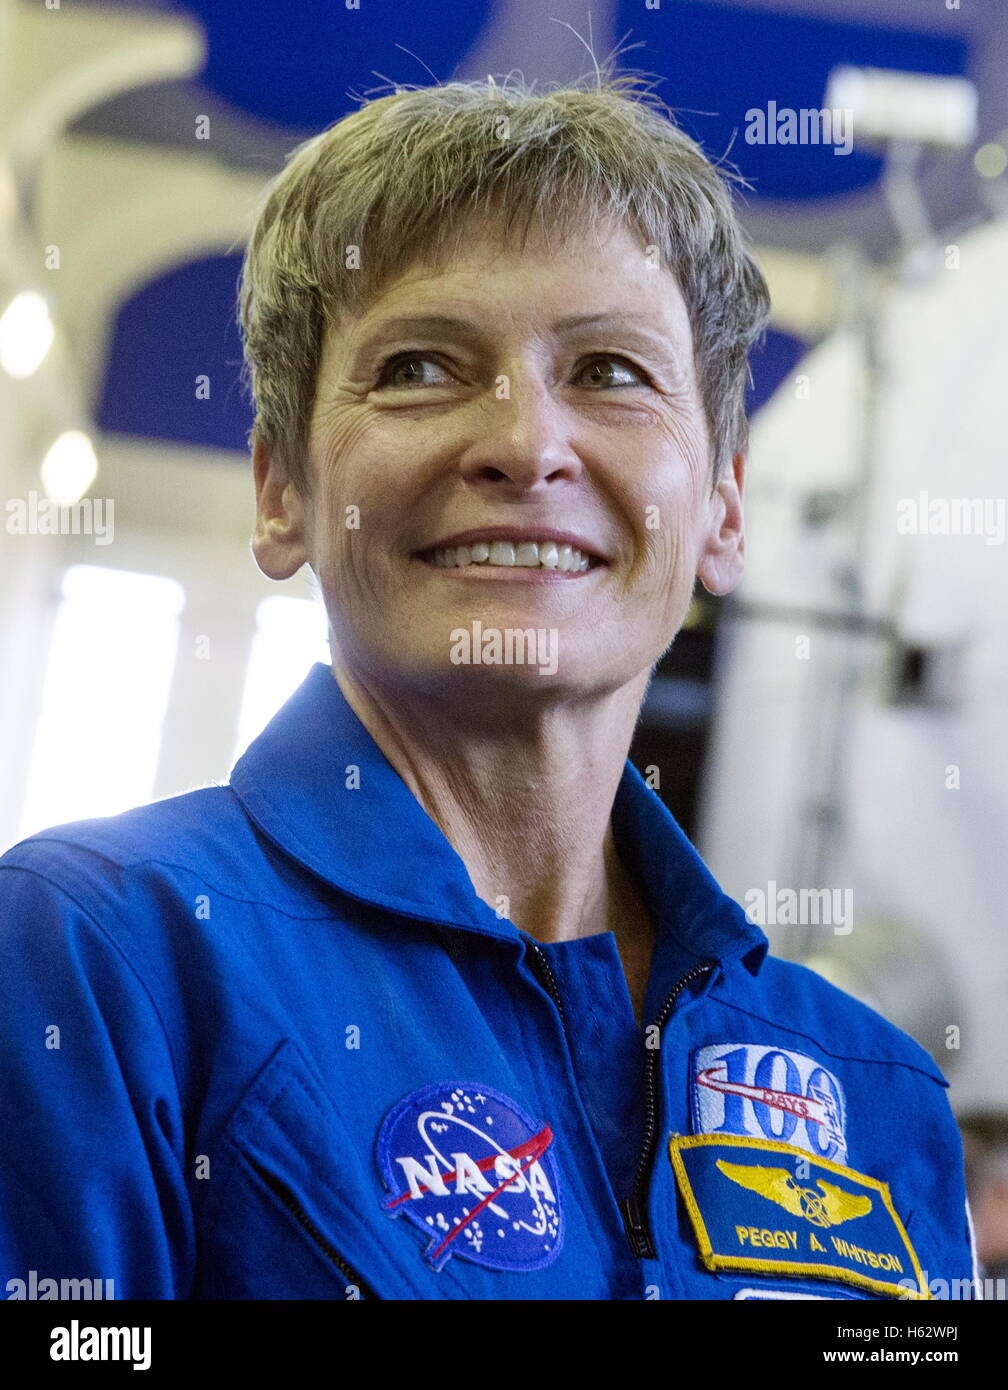 Moscow Region, Russia. 24th Oct, 2016. ISS Expedition 49/50 main crew member, astronaut Peggy Annette Whitson (NASA)poses - Stock Image